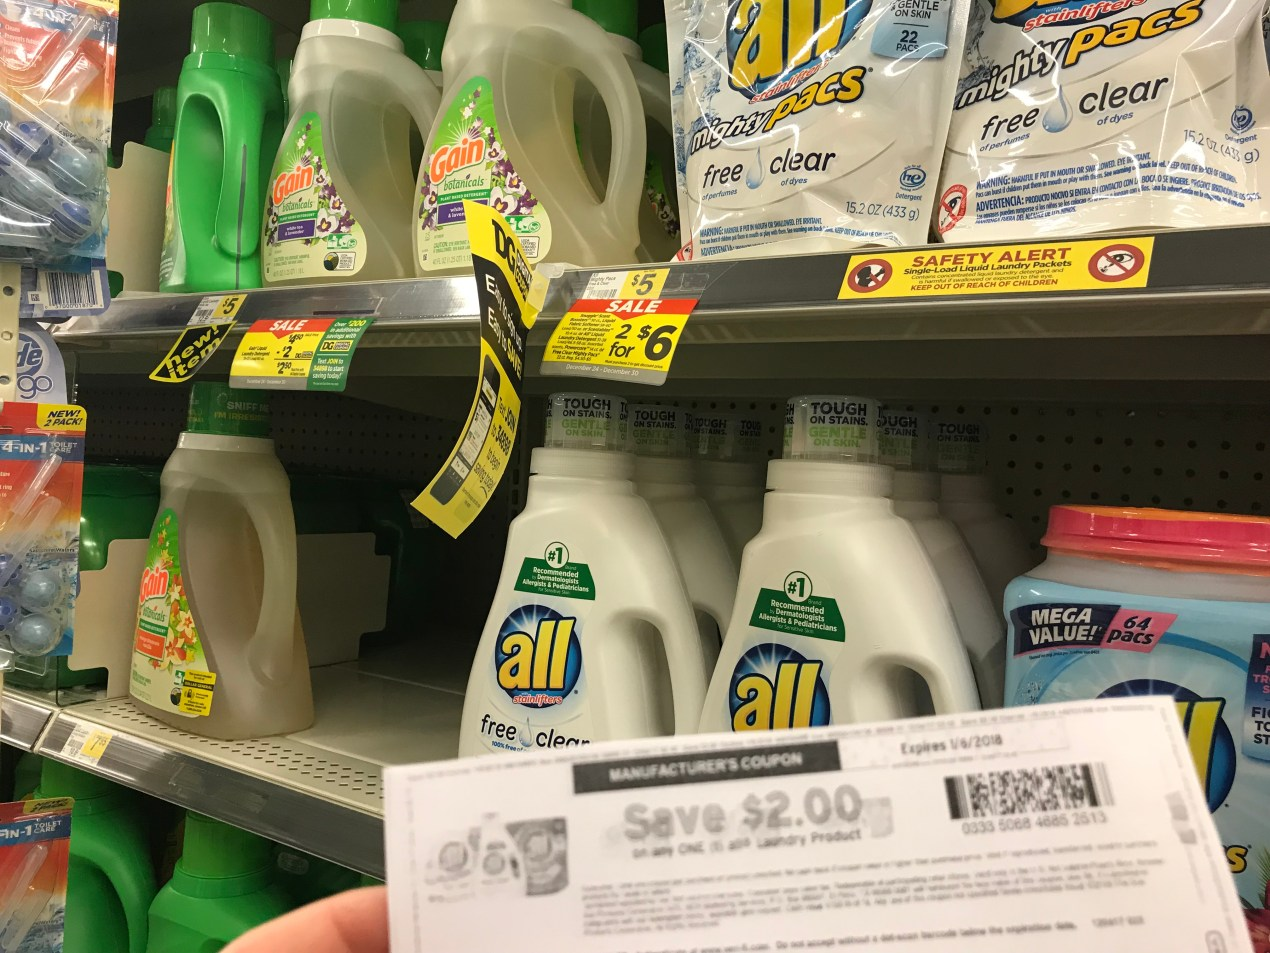 All Detergent for as low as a buck at Dollar General!